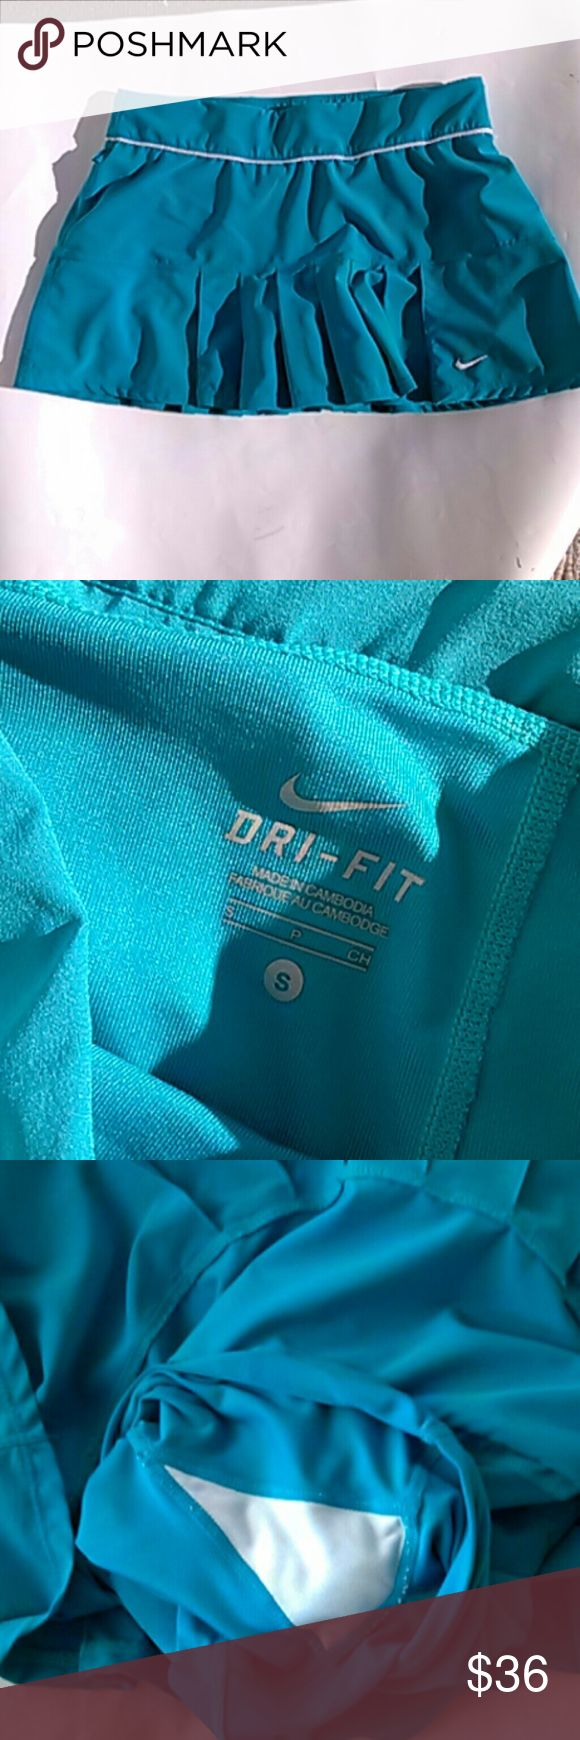 "Nike Pleated Sports Skirt Beautiful turquois measurements waist 30"" HIPS 19"" 12"" inches long in front and back DRI-FIT Built in shorts Gently pre-loved Size Small Nike Shorts Skorts"